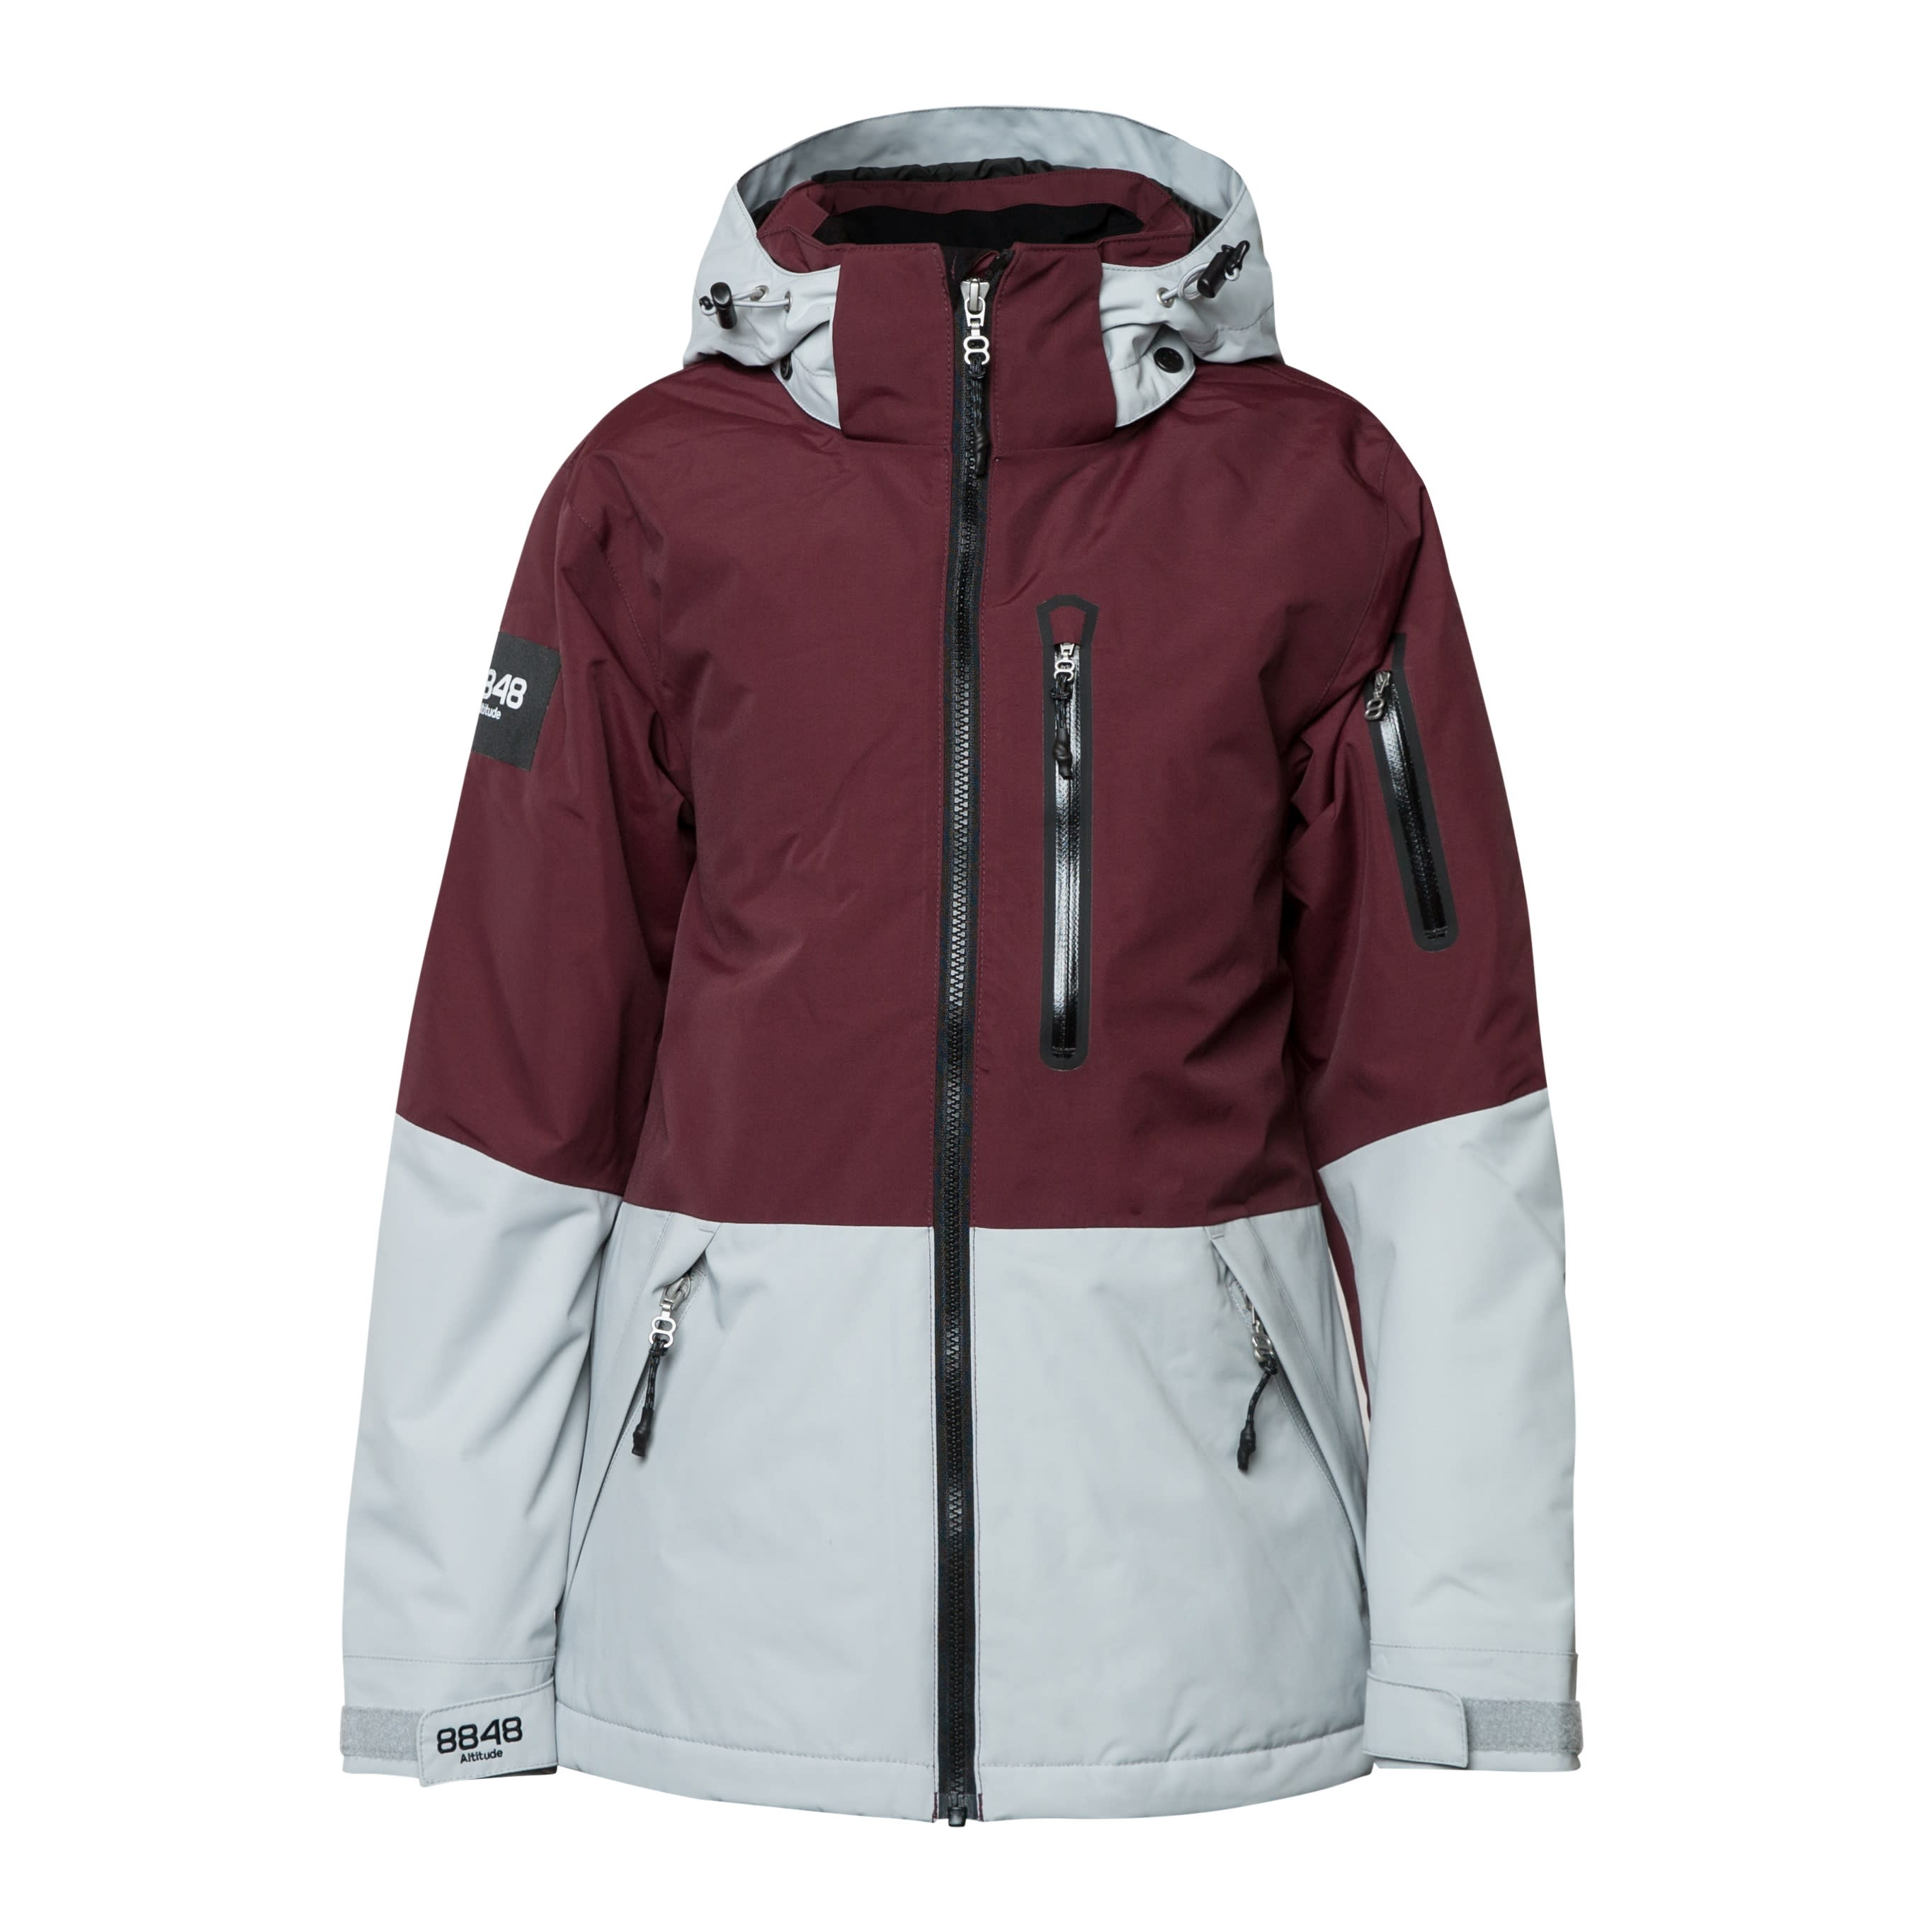 8848 Altitude Kaman Jacket Jr Toppatakki | Intersport